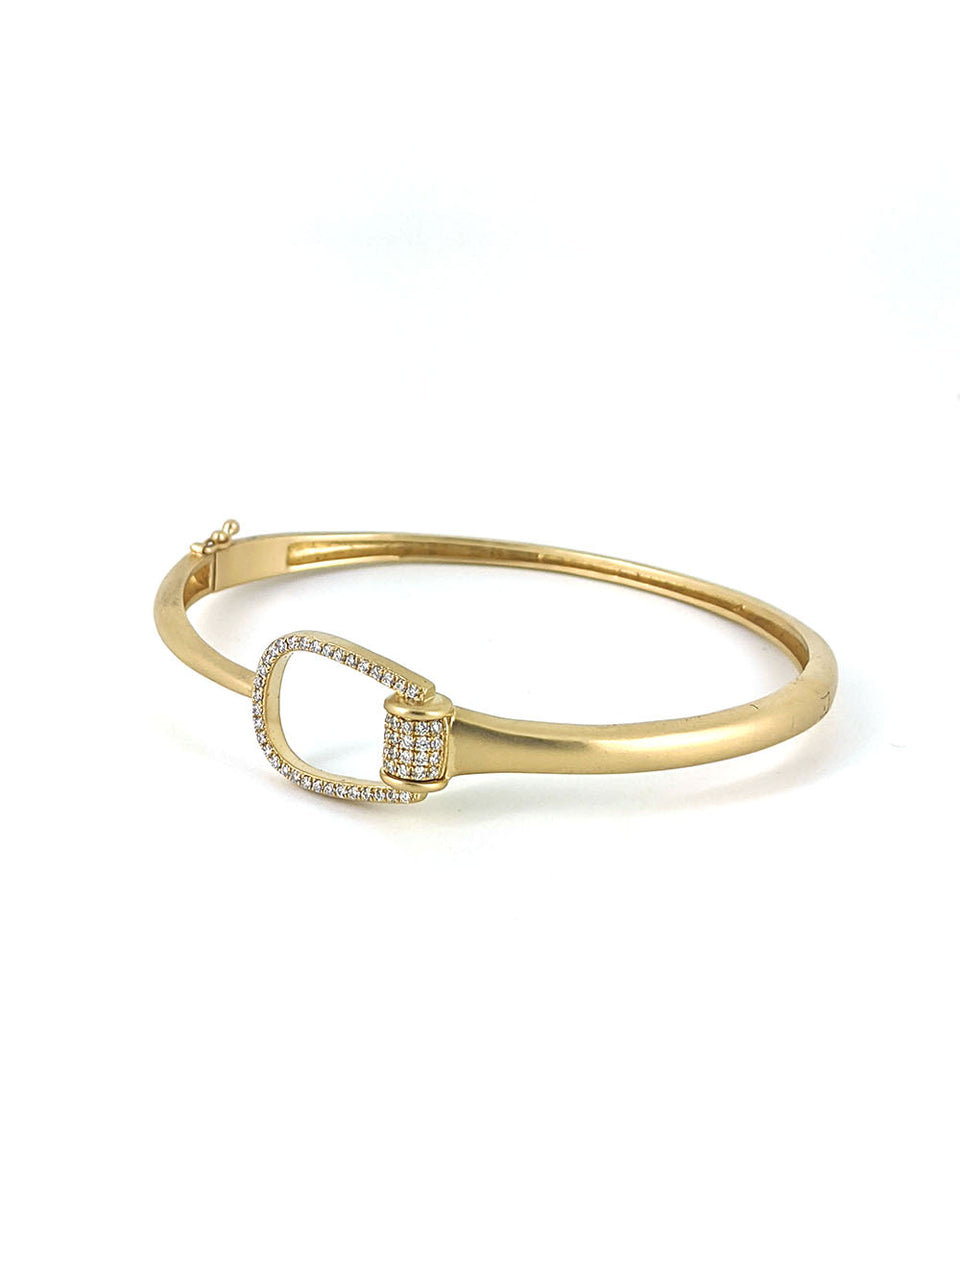 Gold and Diamond Horsebit Bracelet